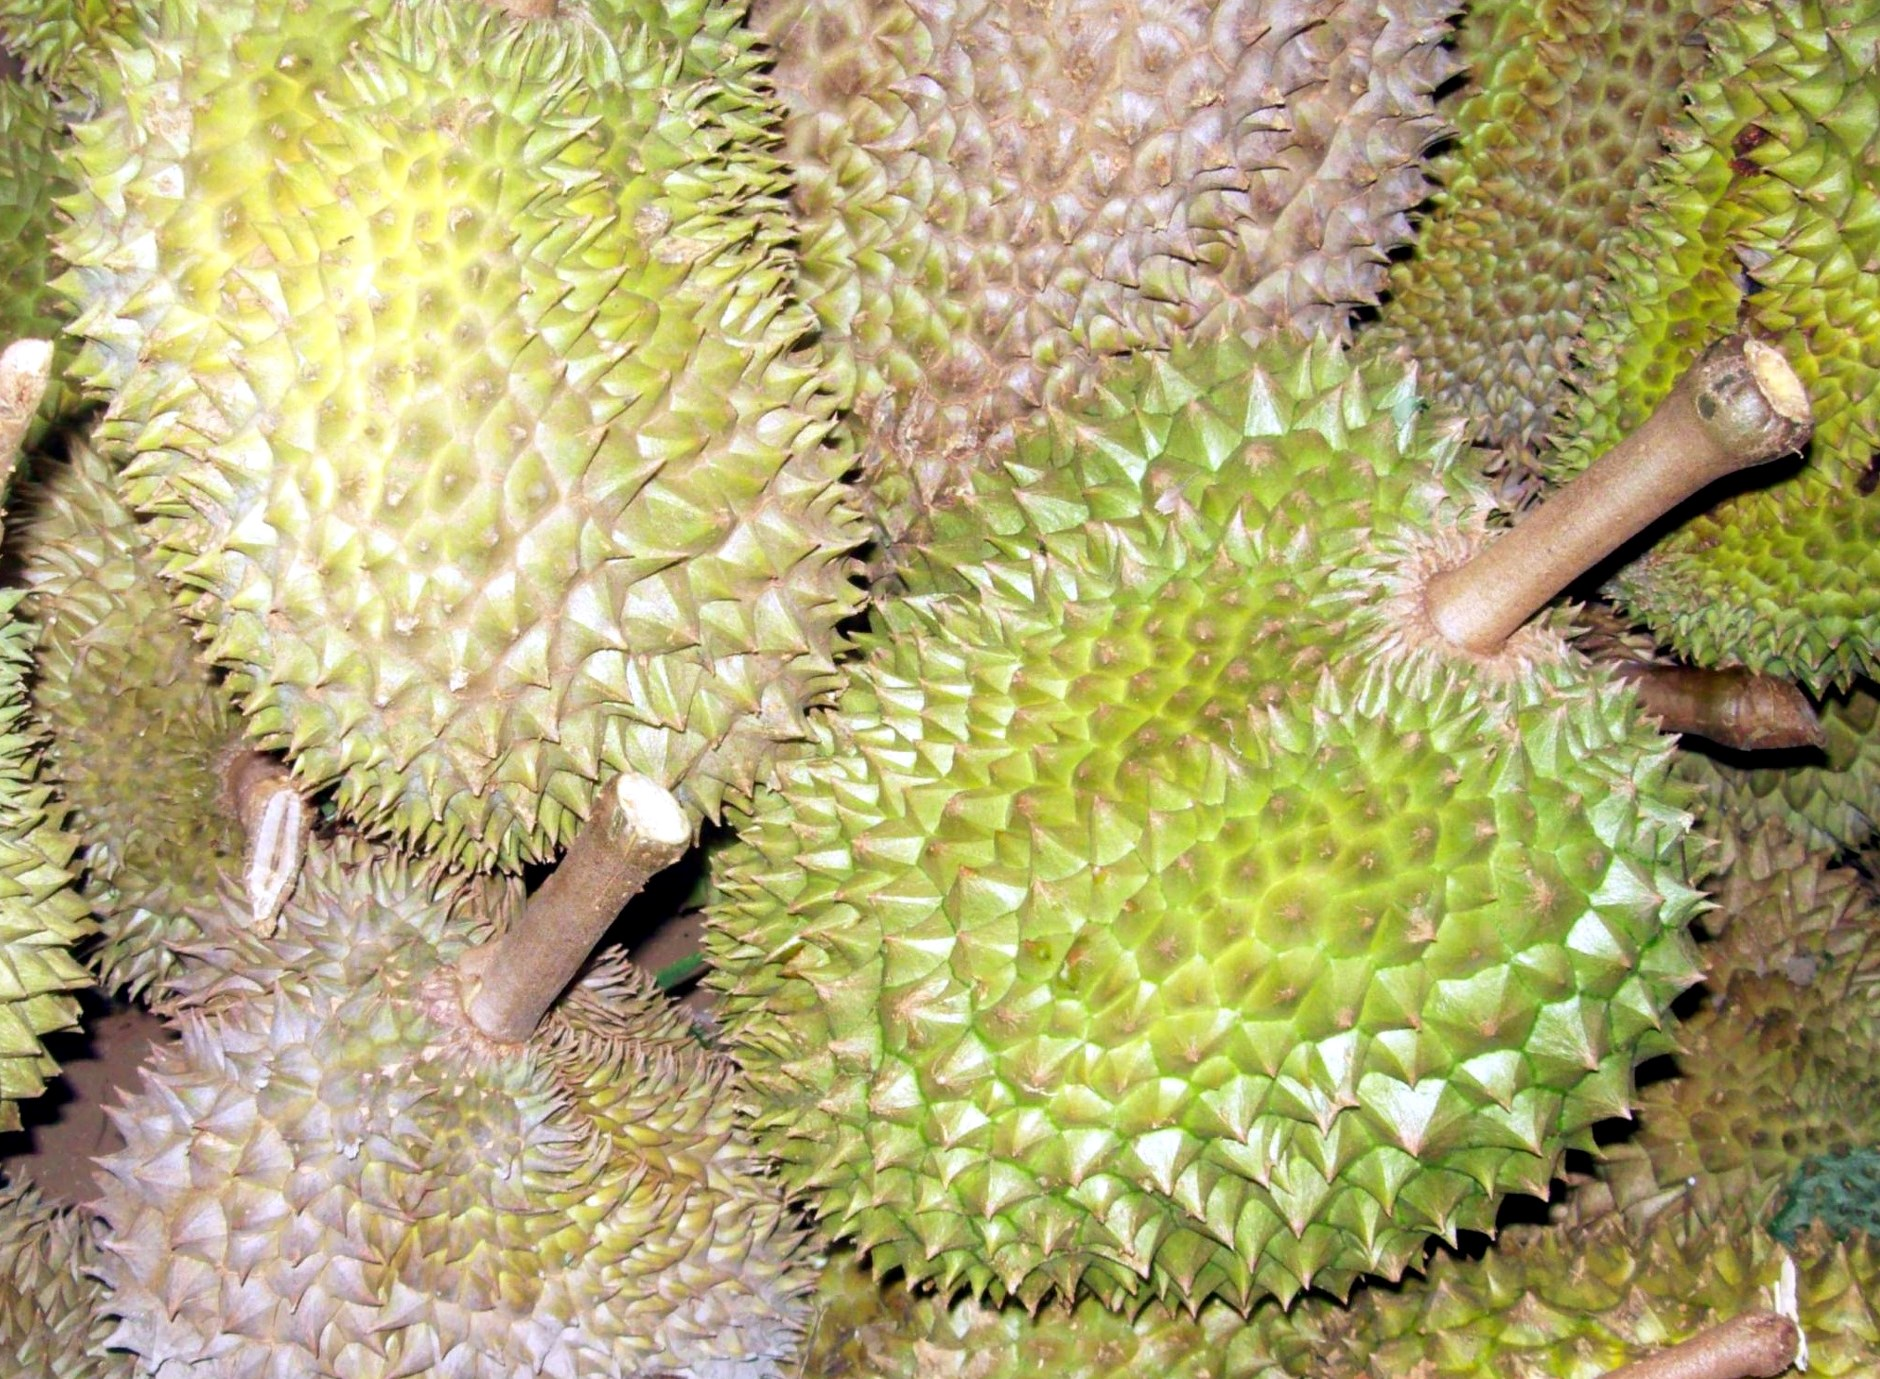 durian davao s controversial fruit edge davao